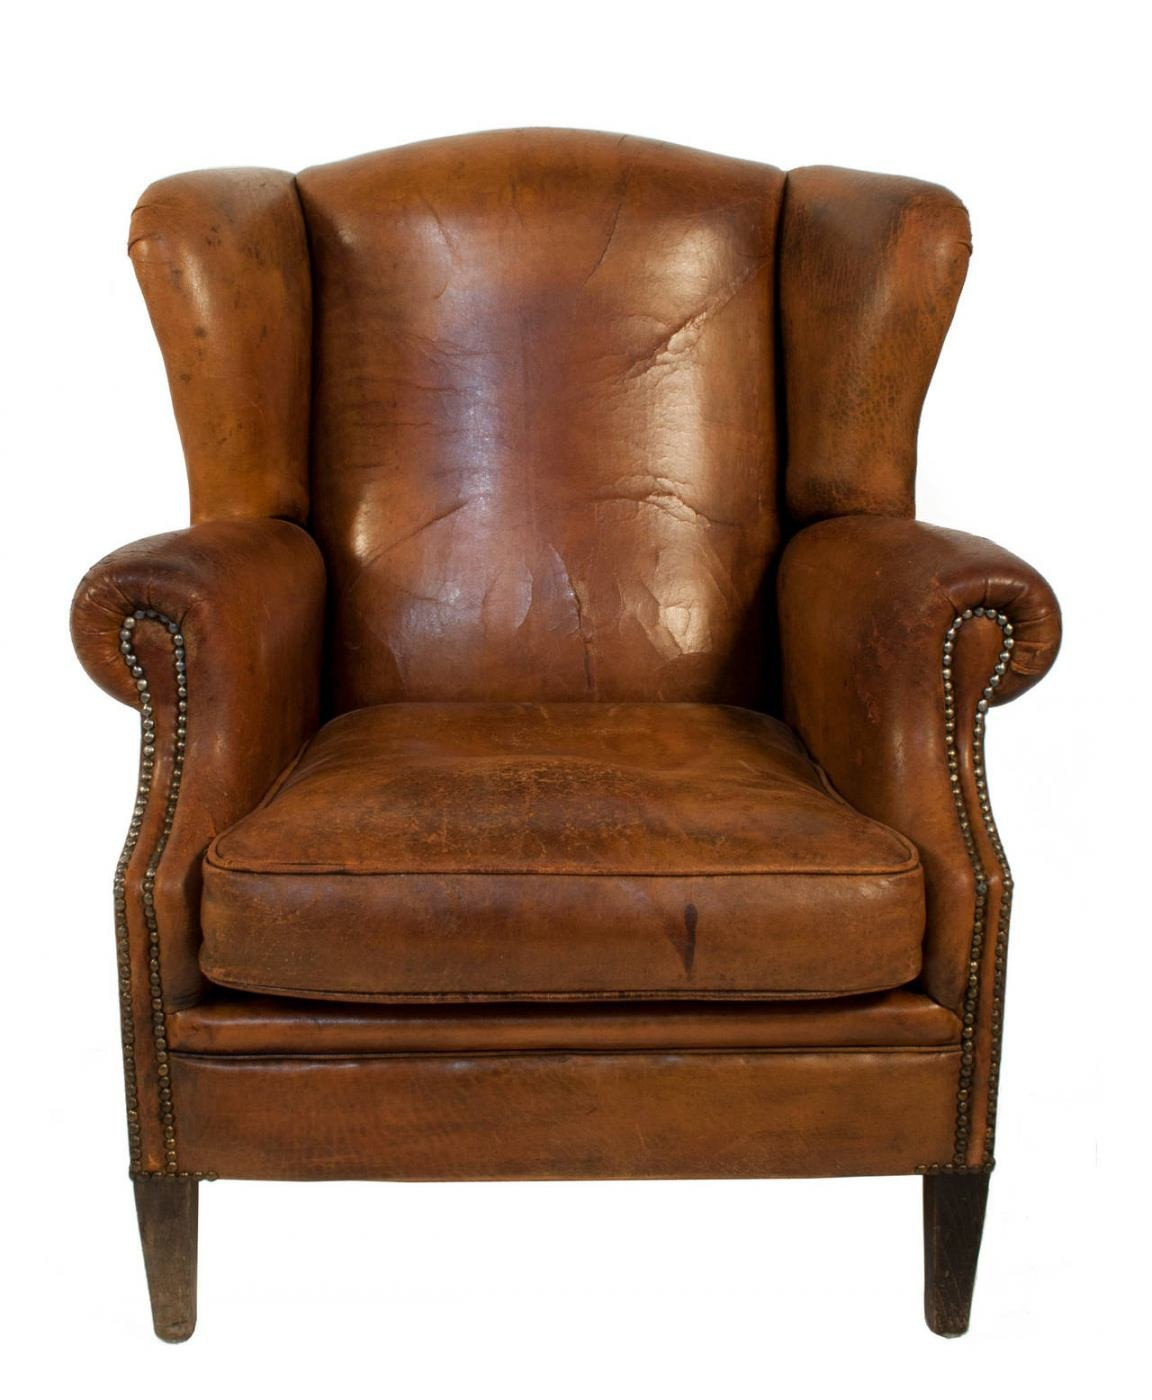 Most Comfortable Living Roomfurniture Elegant fortable Lounge Chairs Furniture Ideas Funky Armchairs